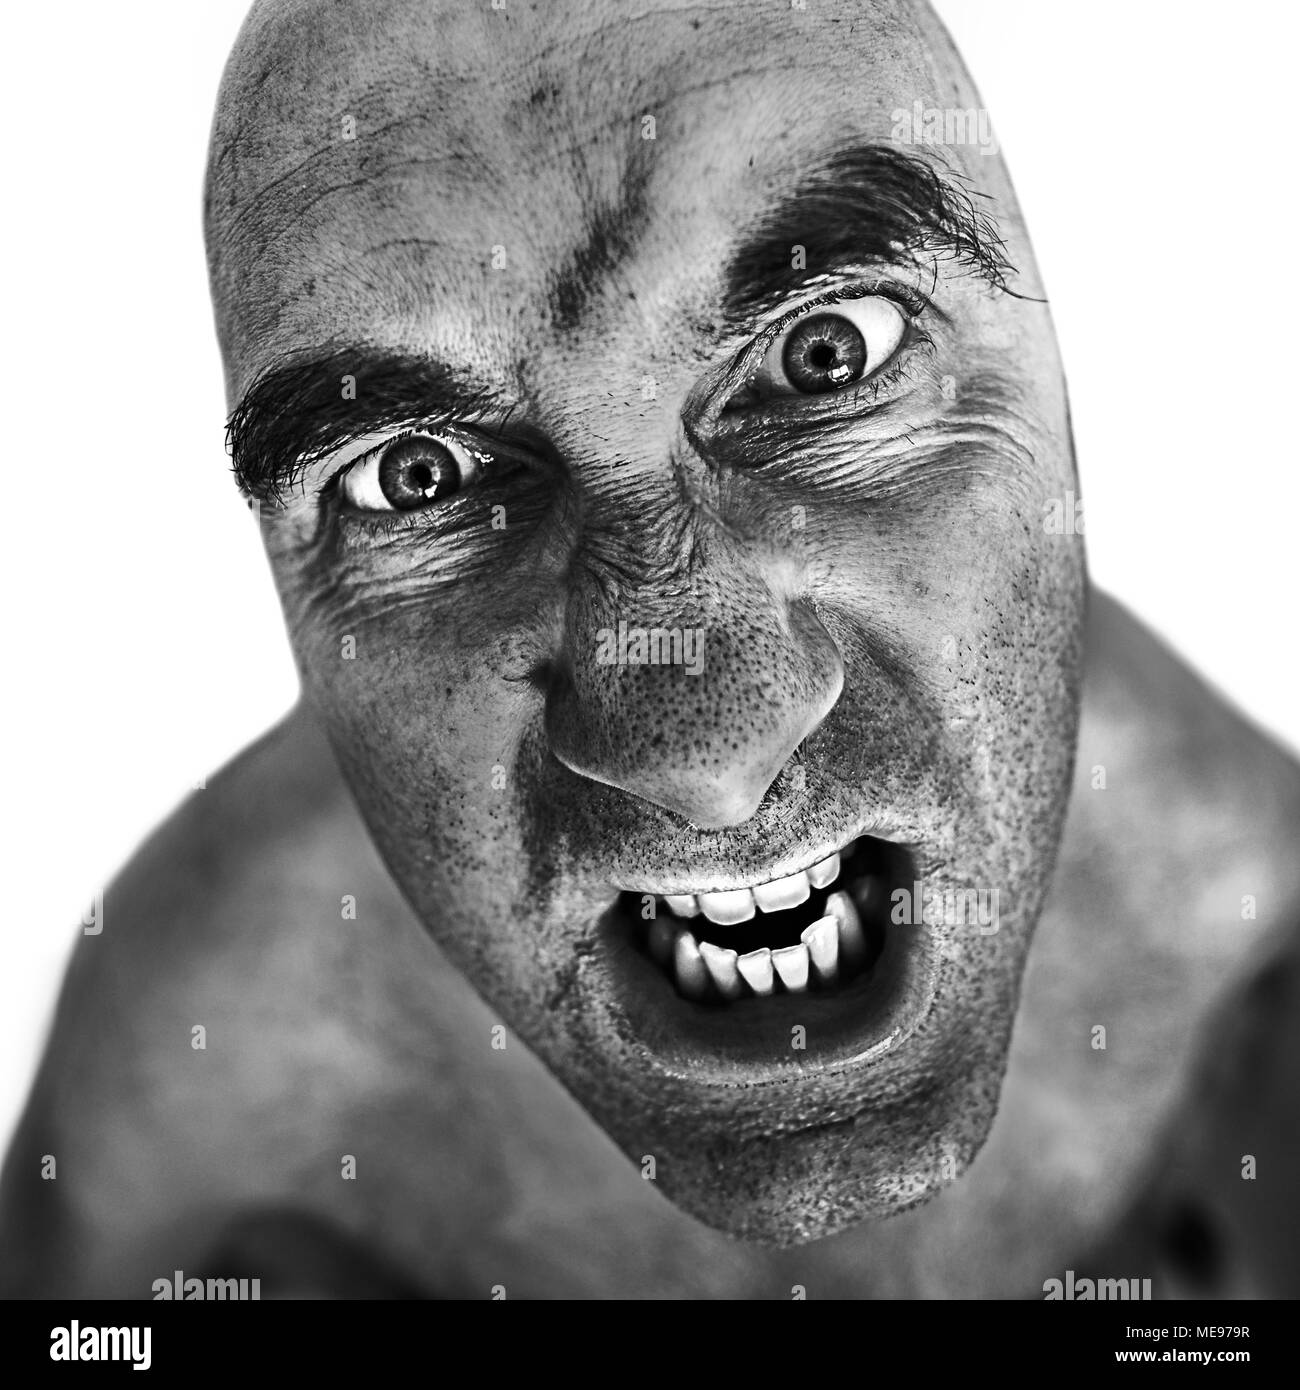 Black and white portrait of mad man processed using the dragan effect. - Stock Image